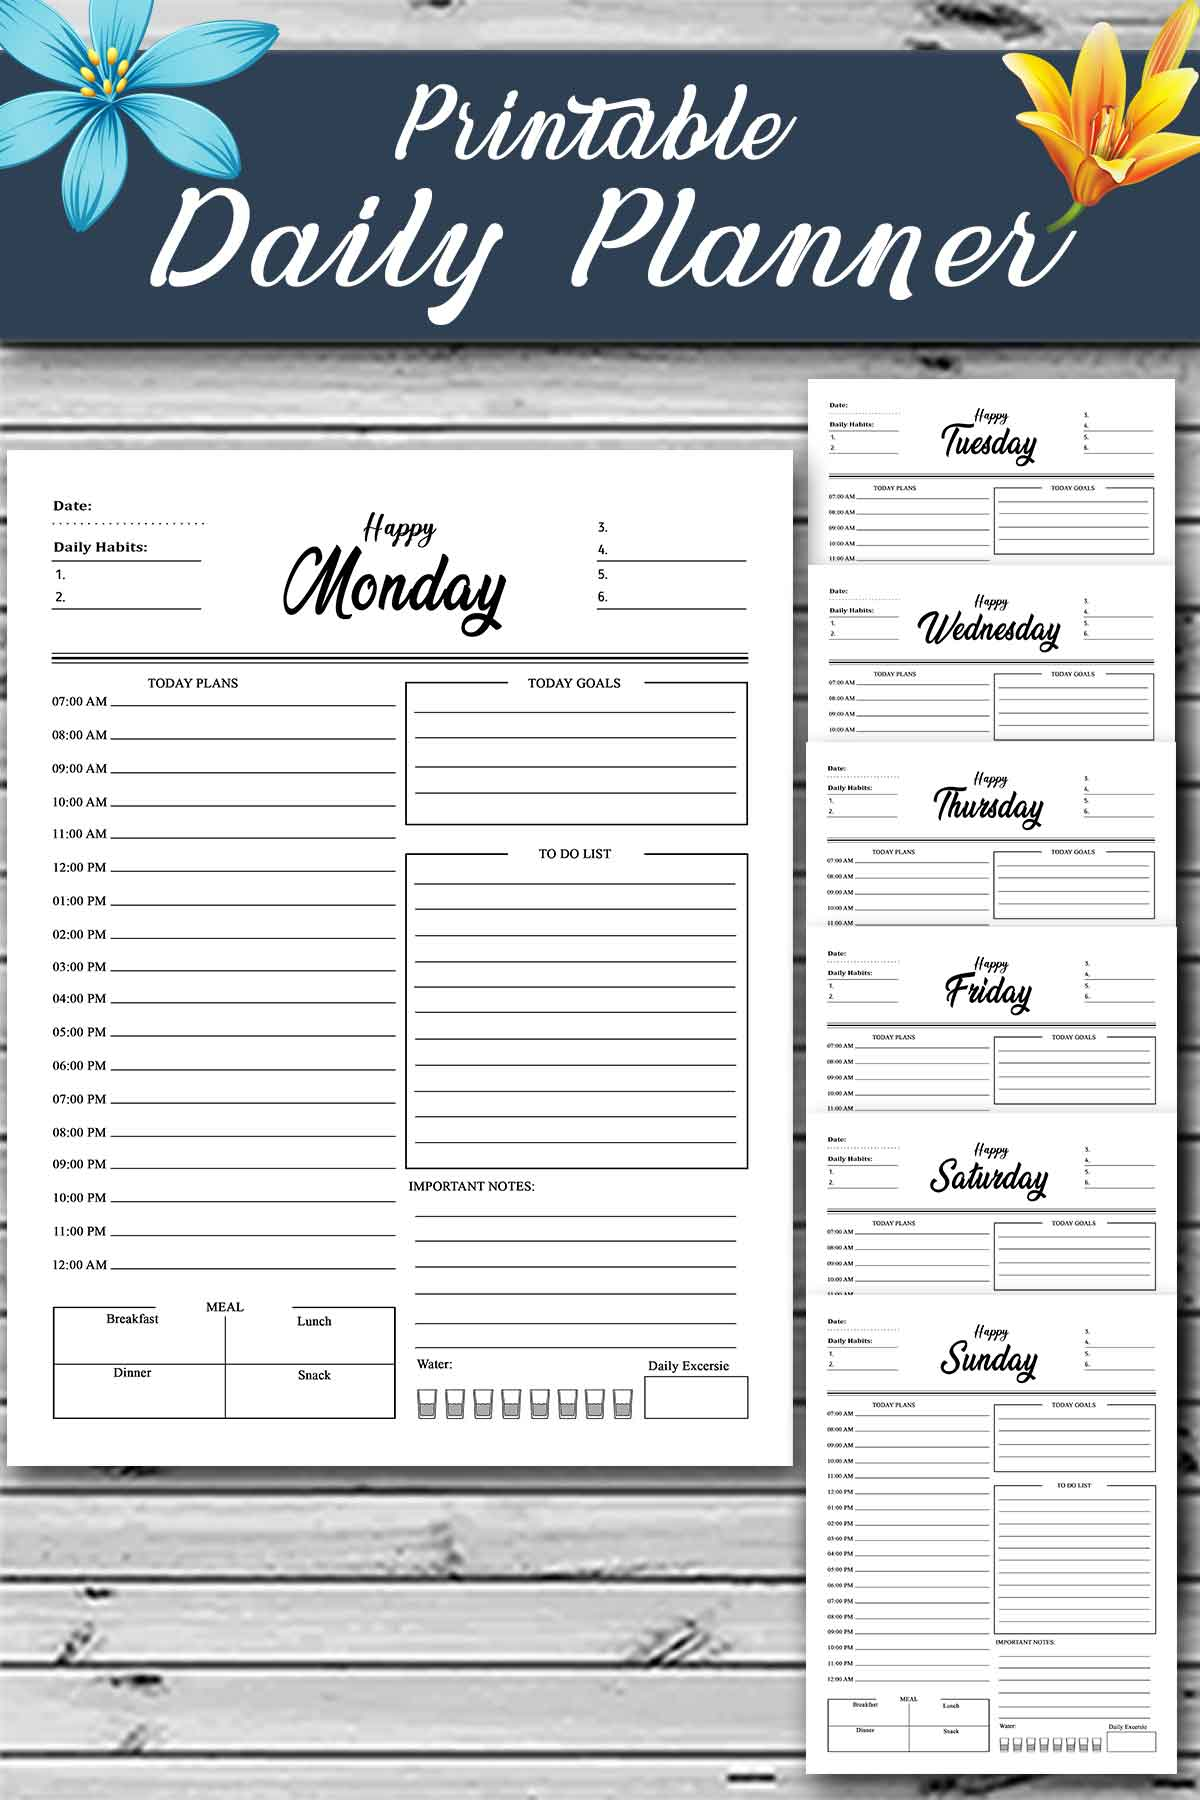 Best daily planner printable - daily schedule printable